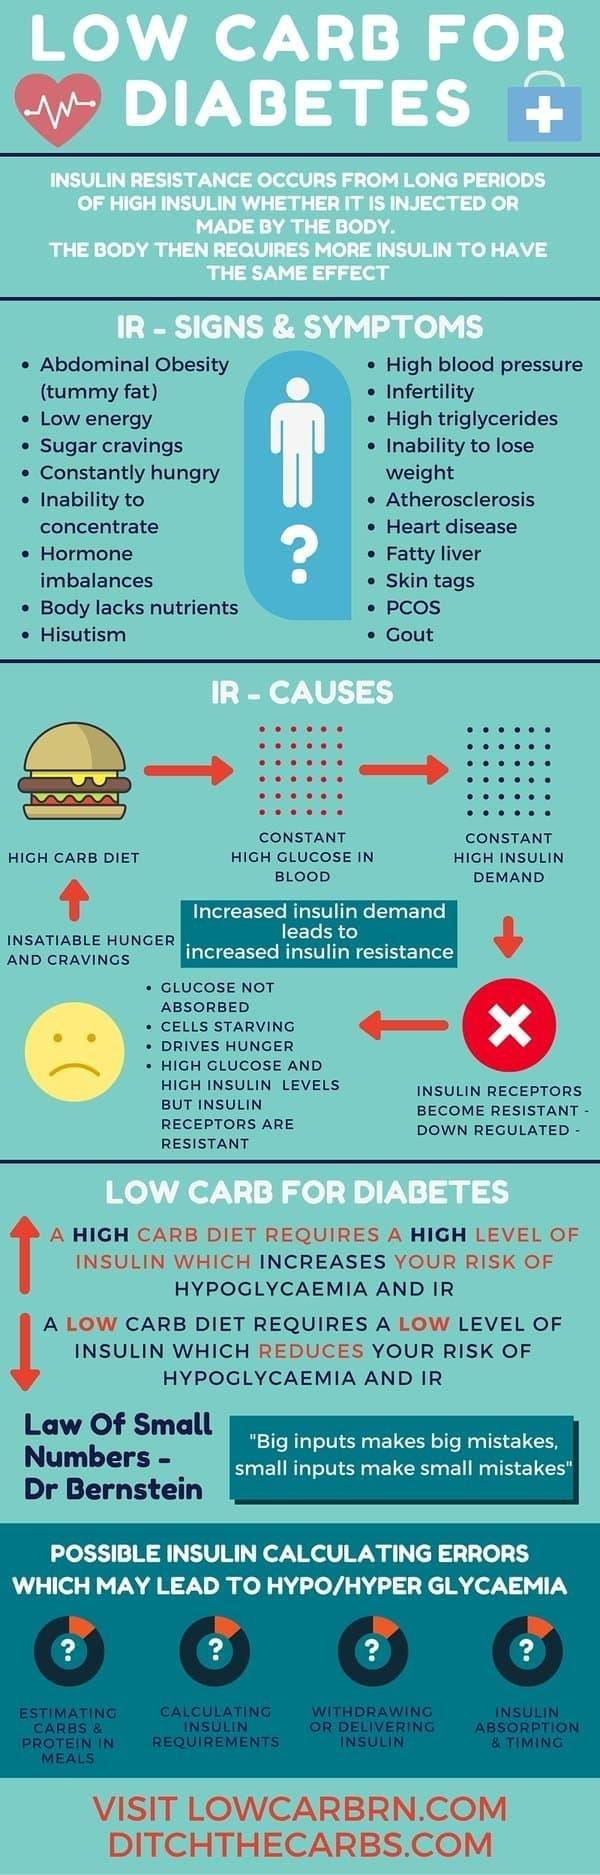 How To Eat For Diabetes